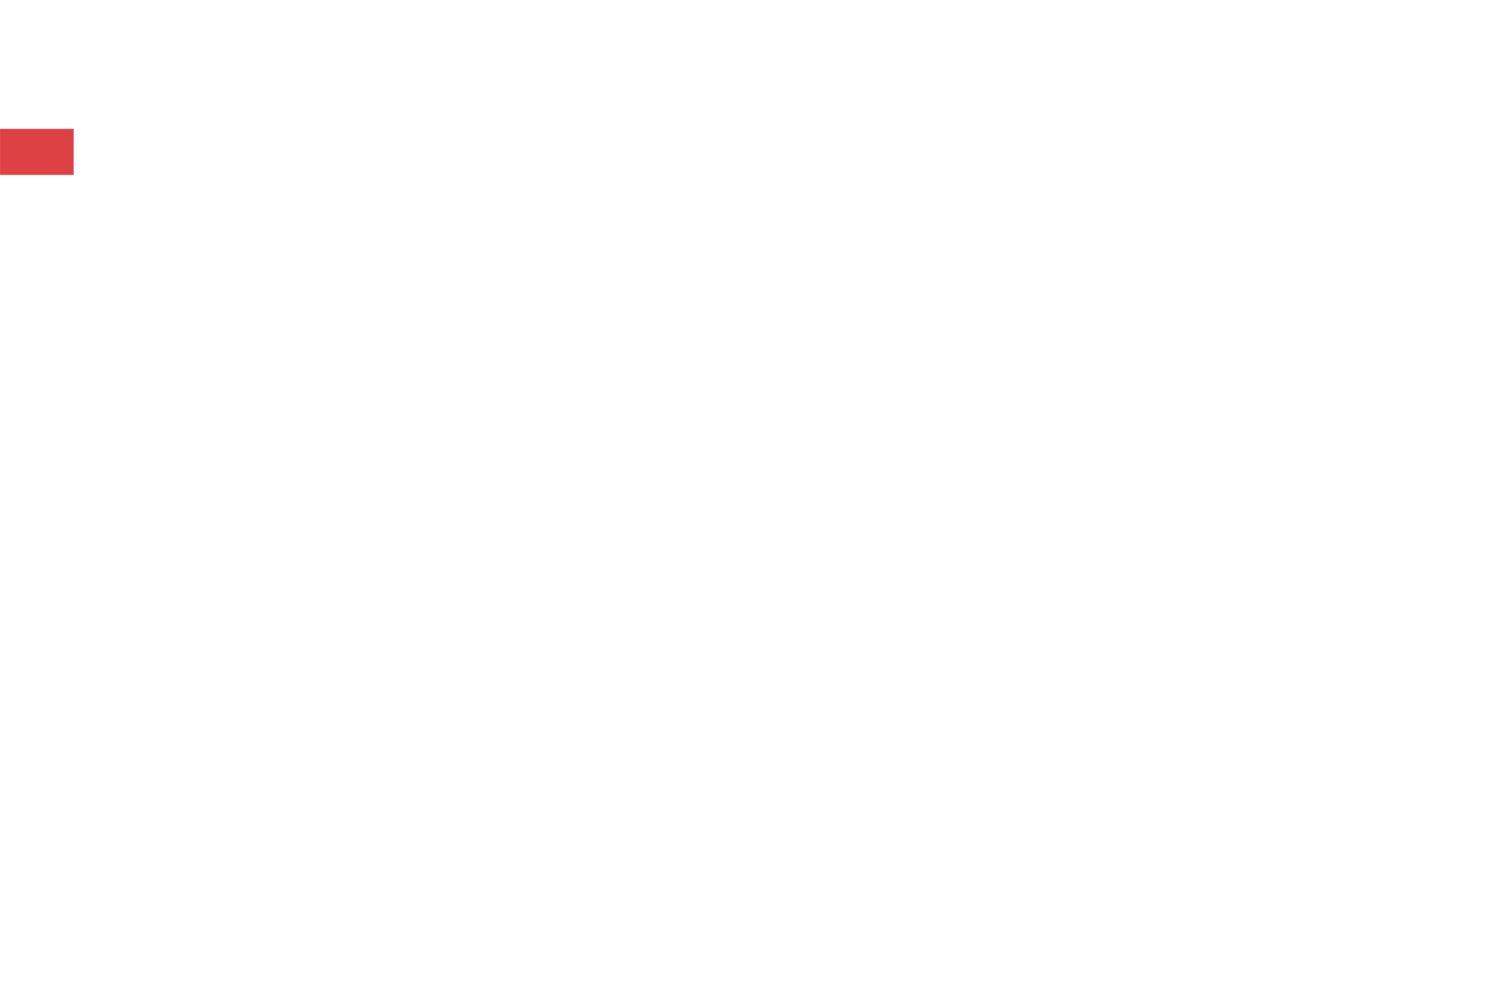 Panorama Mixing & Mastering Audio. We help connect listeners with your music.